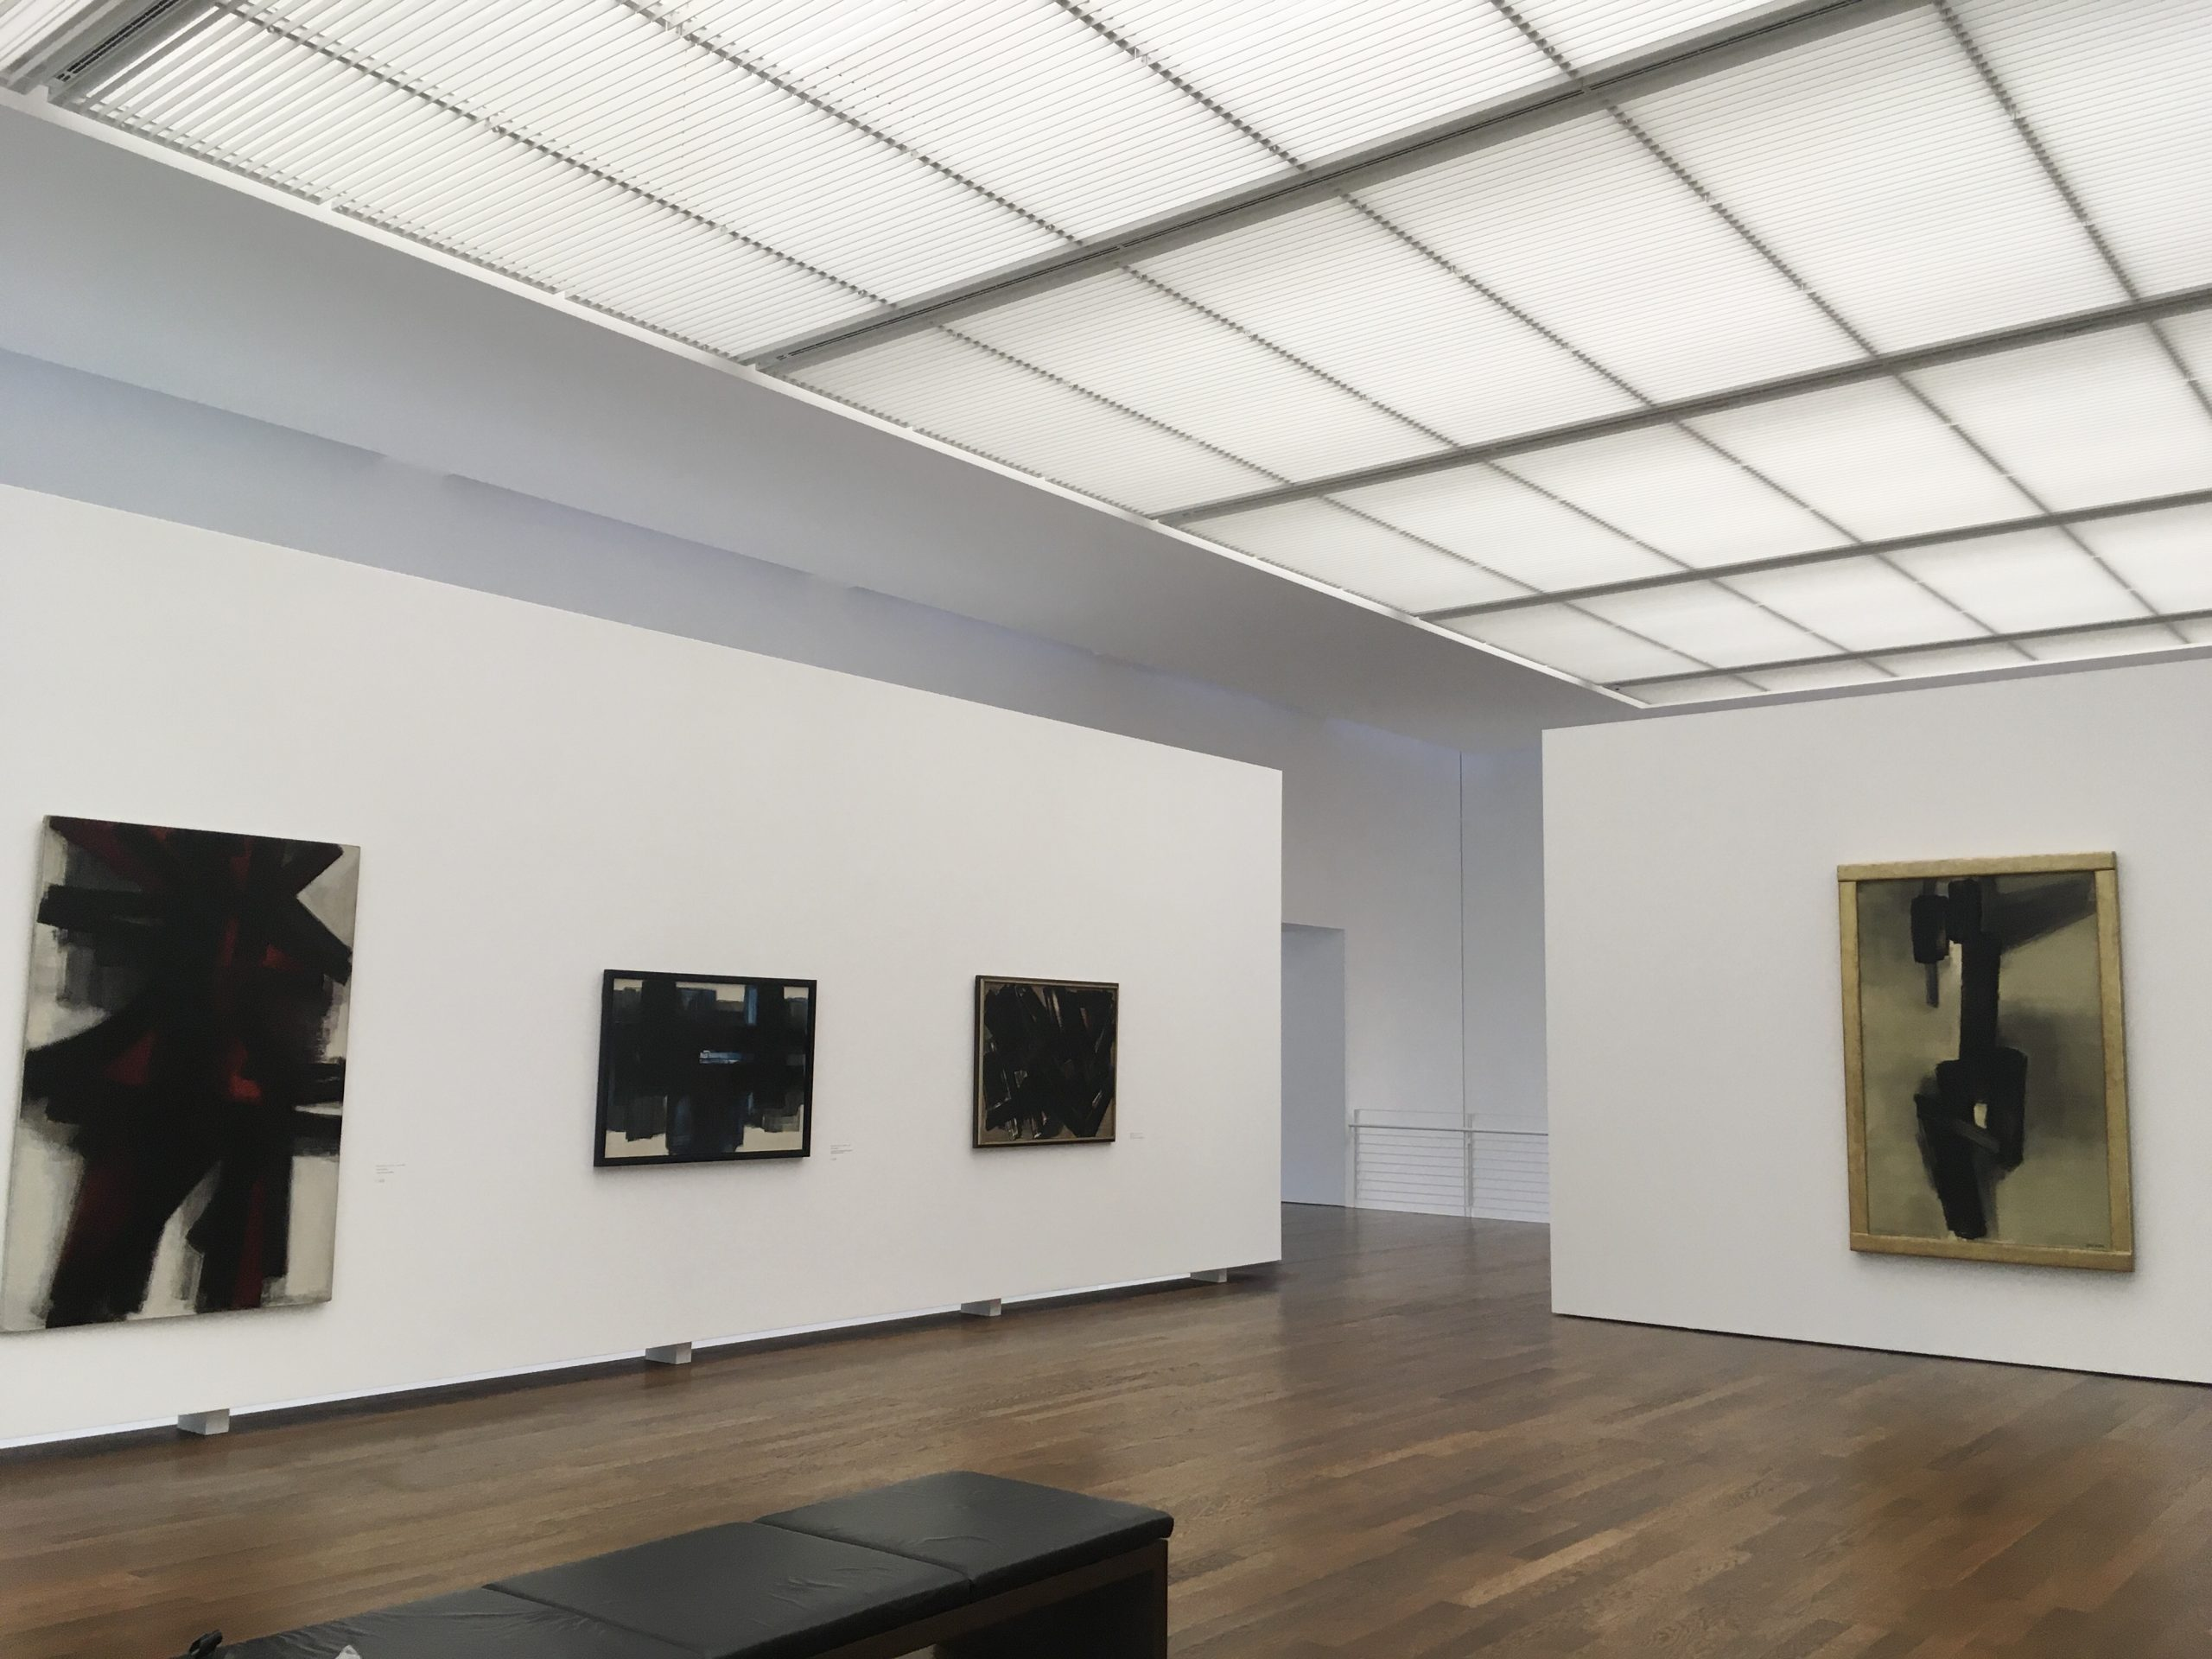 soulages_frieder burda_50er